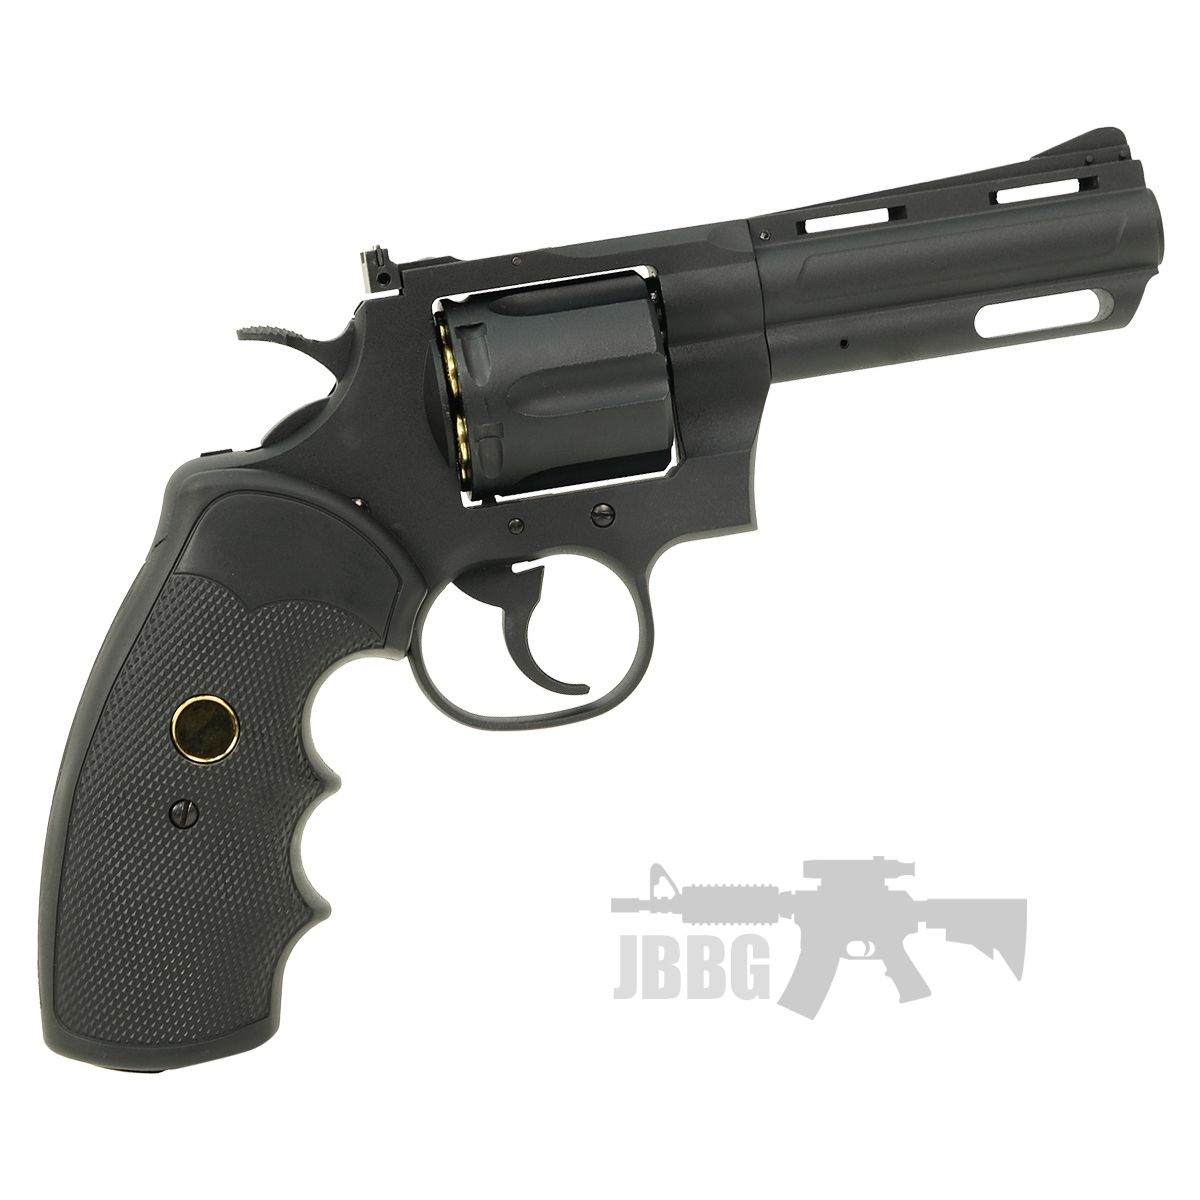 King Arms Co2 Airsoft Revolver 2